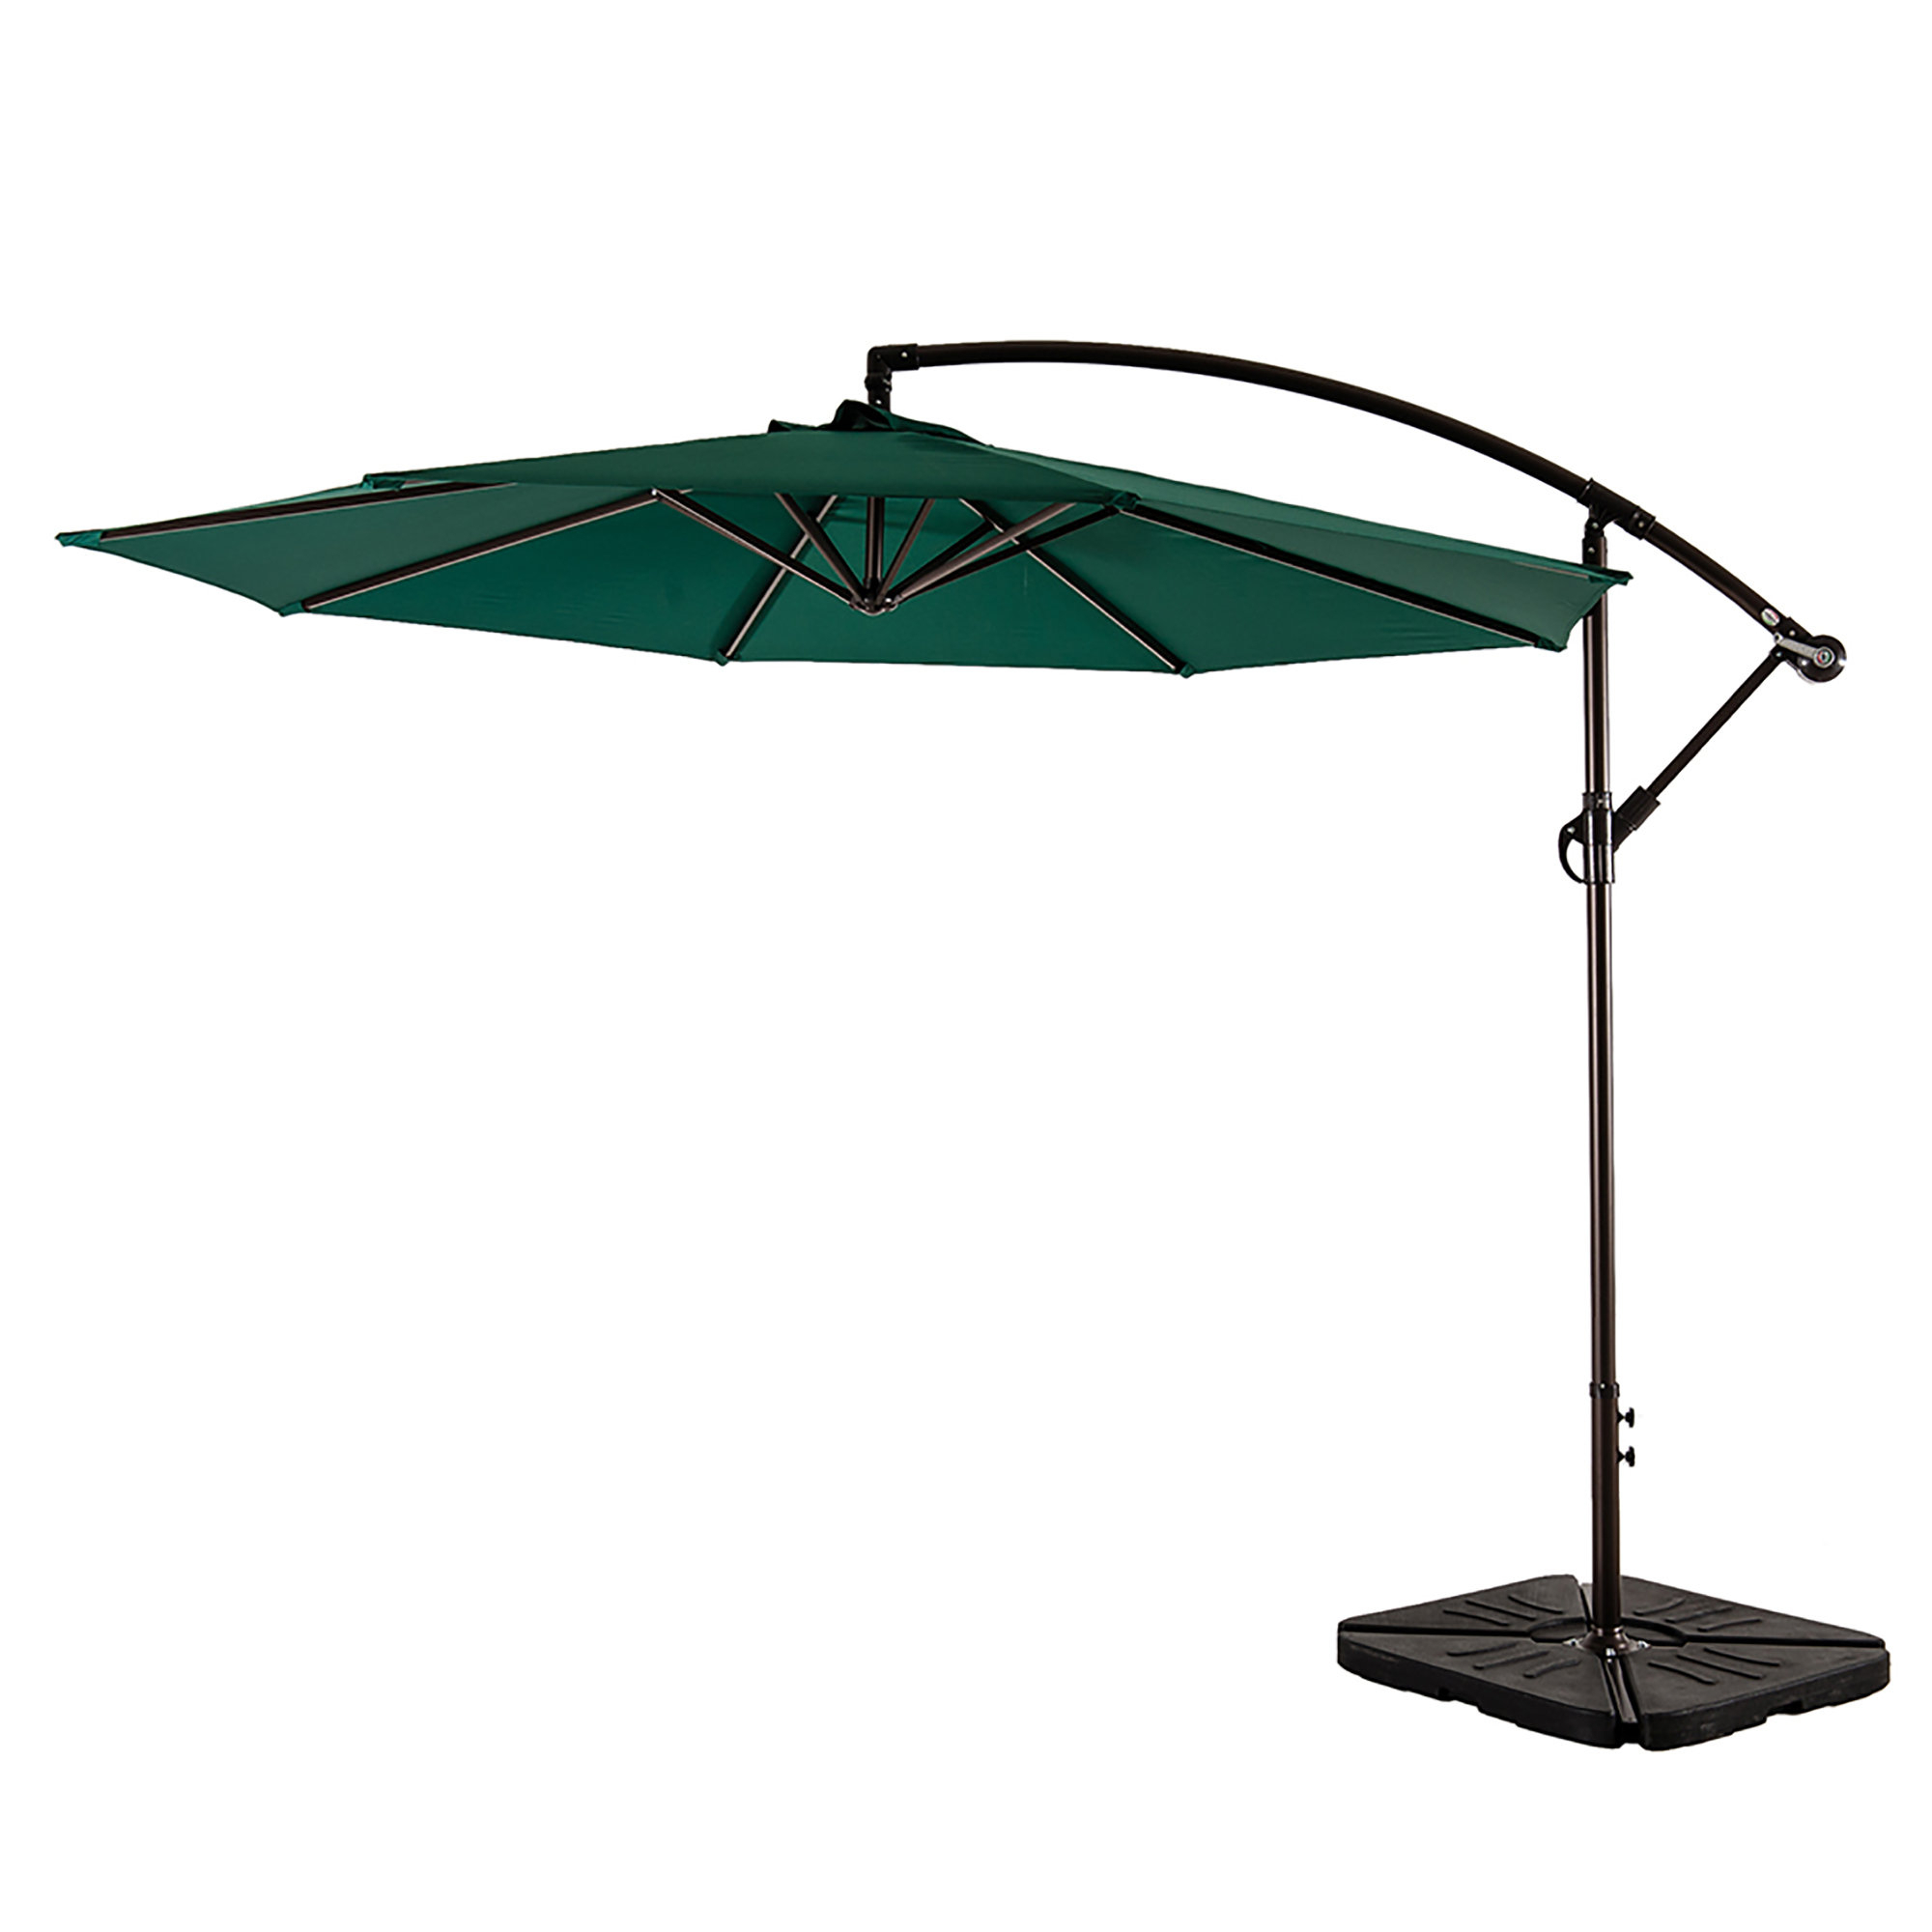 Karr 10' Cantilever Umbrella With 2020 Lora Market Umbrellas (View 10 of 20)